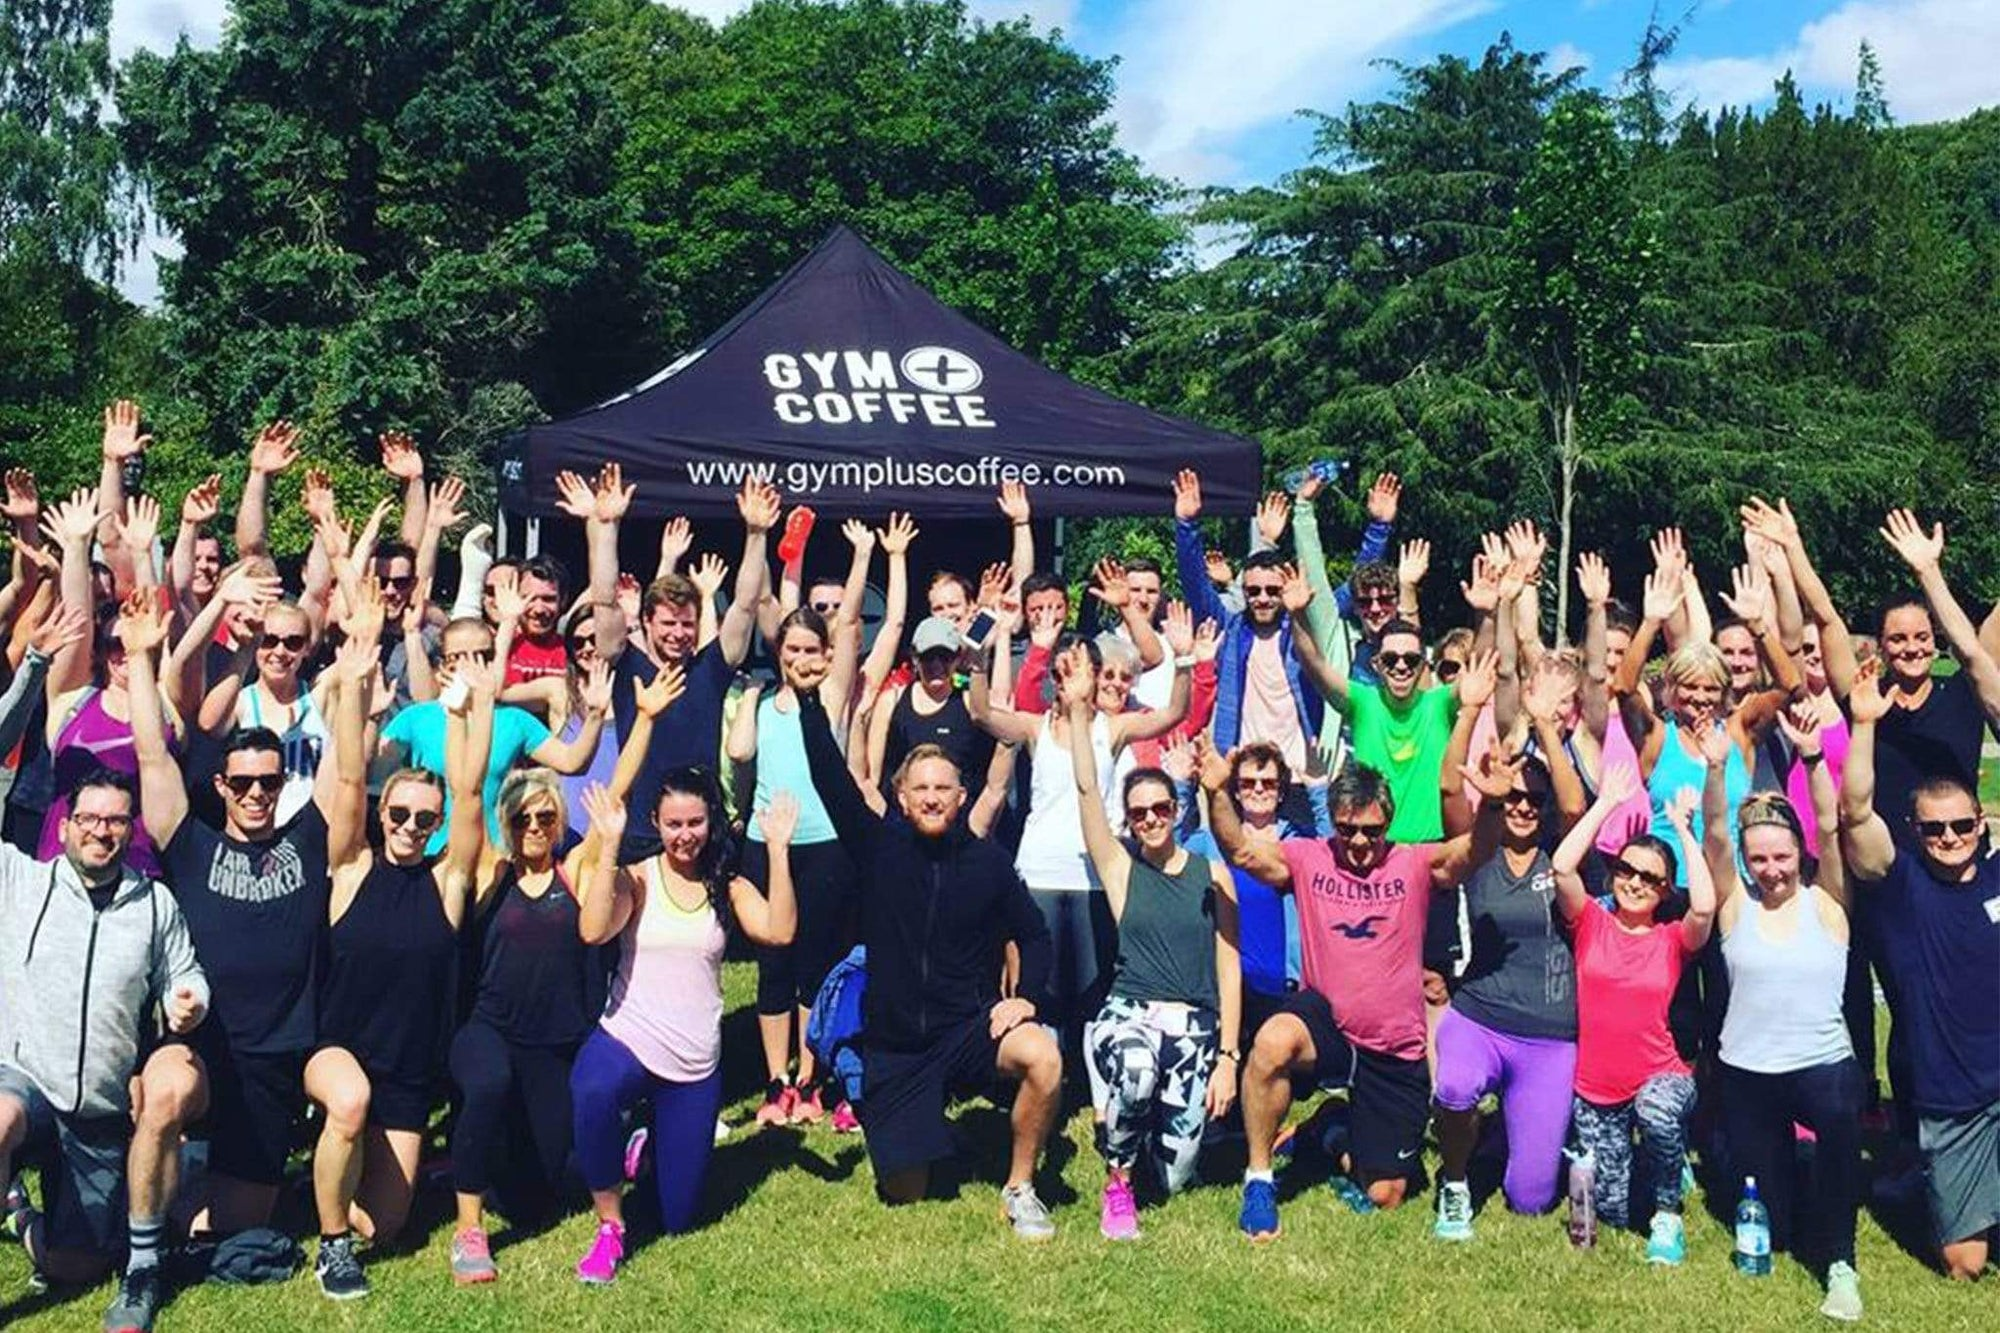 Gym+Coffee Free Fitness Class in Fitzgerald Park, Cork